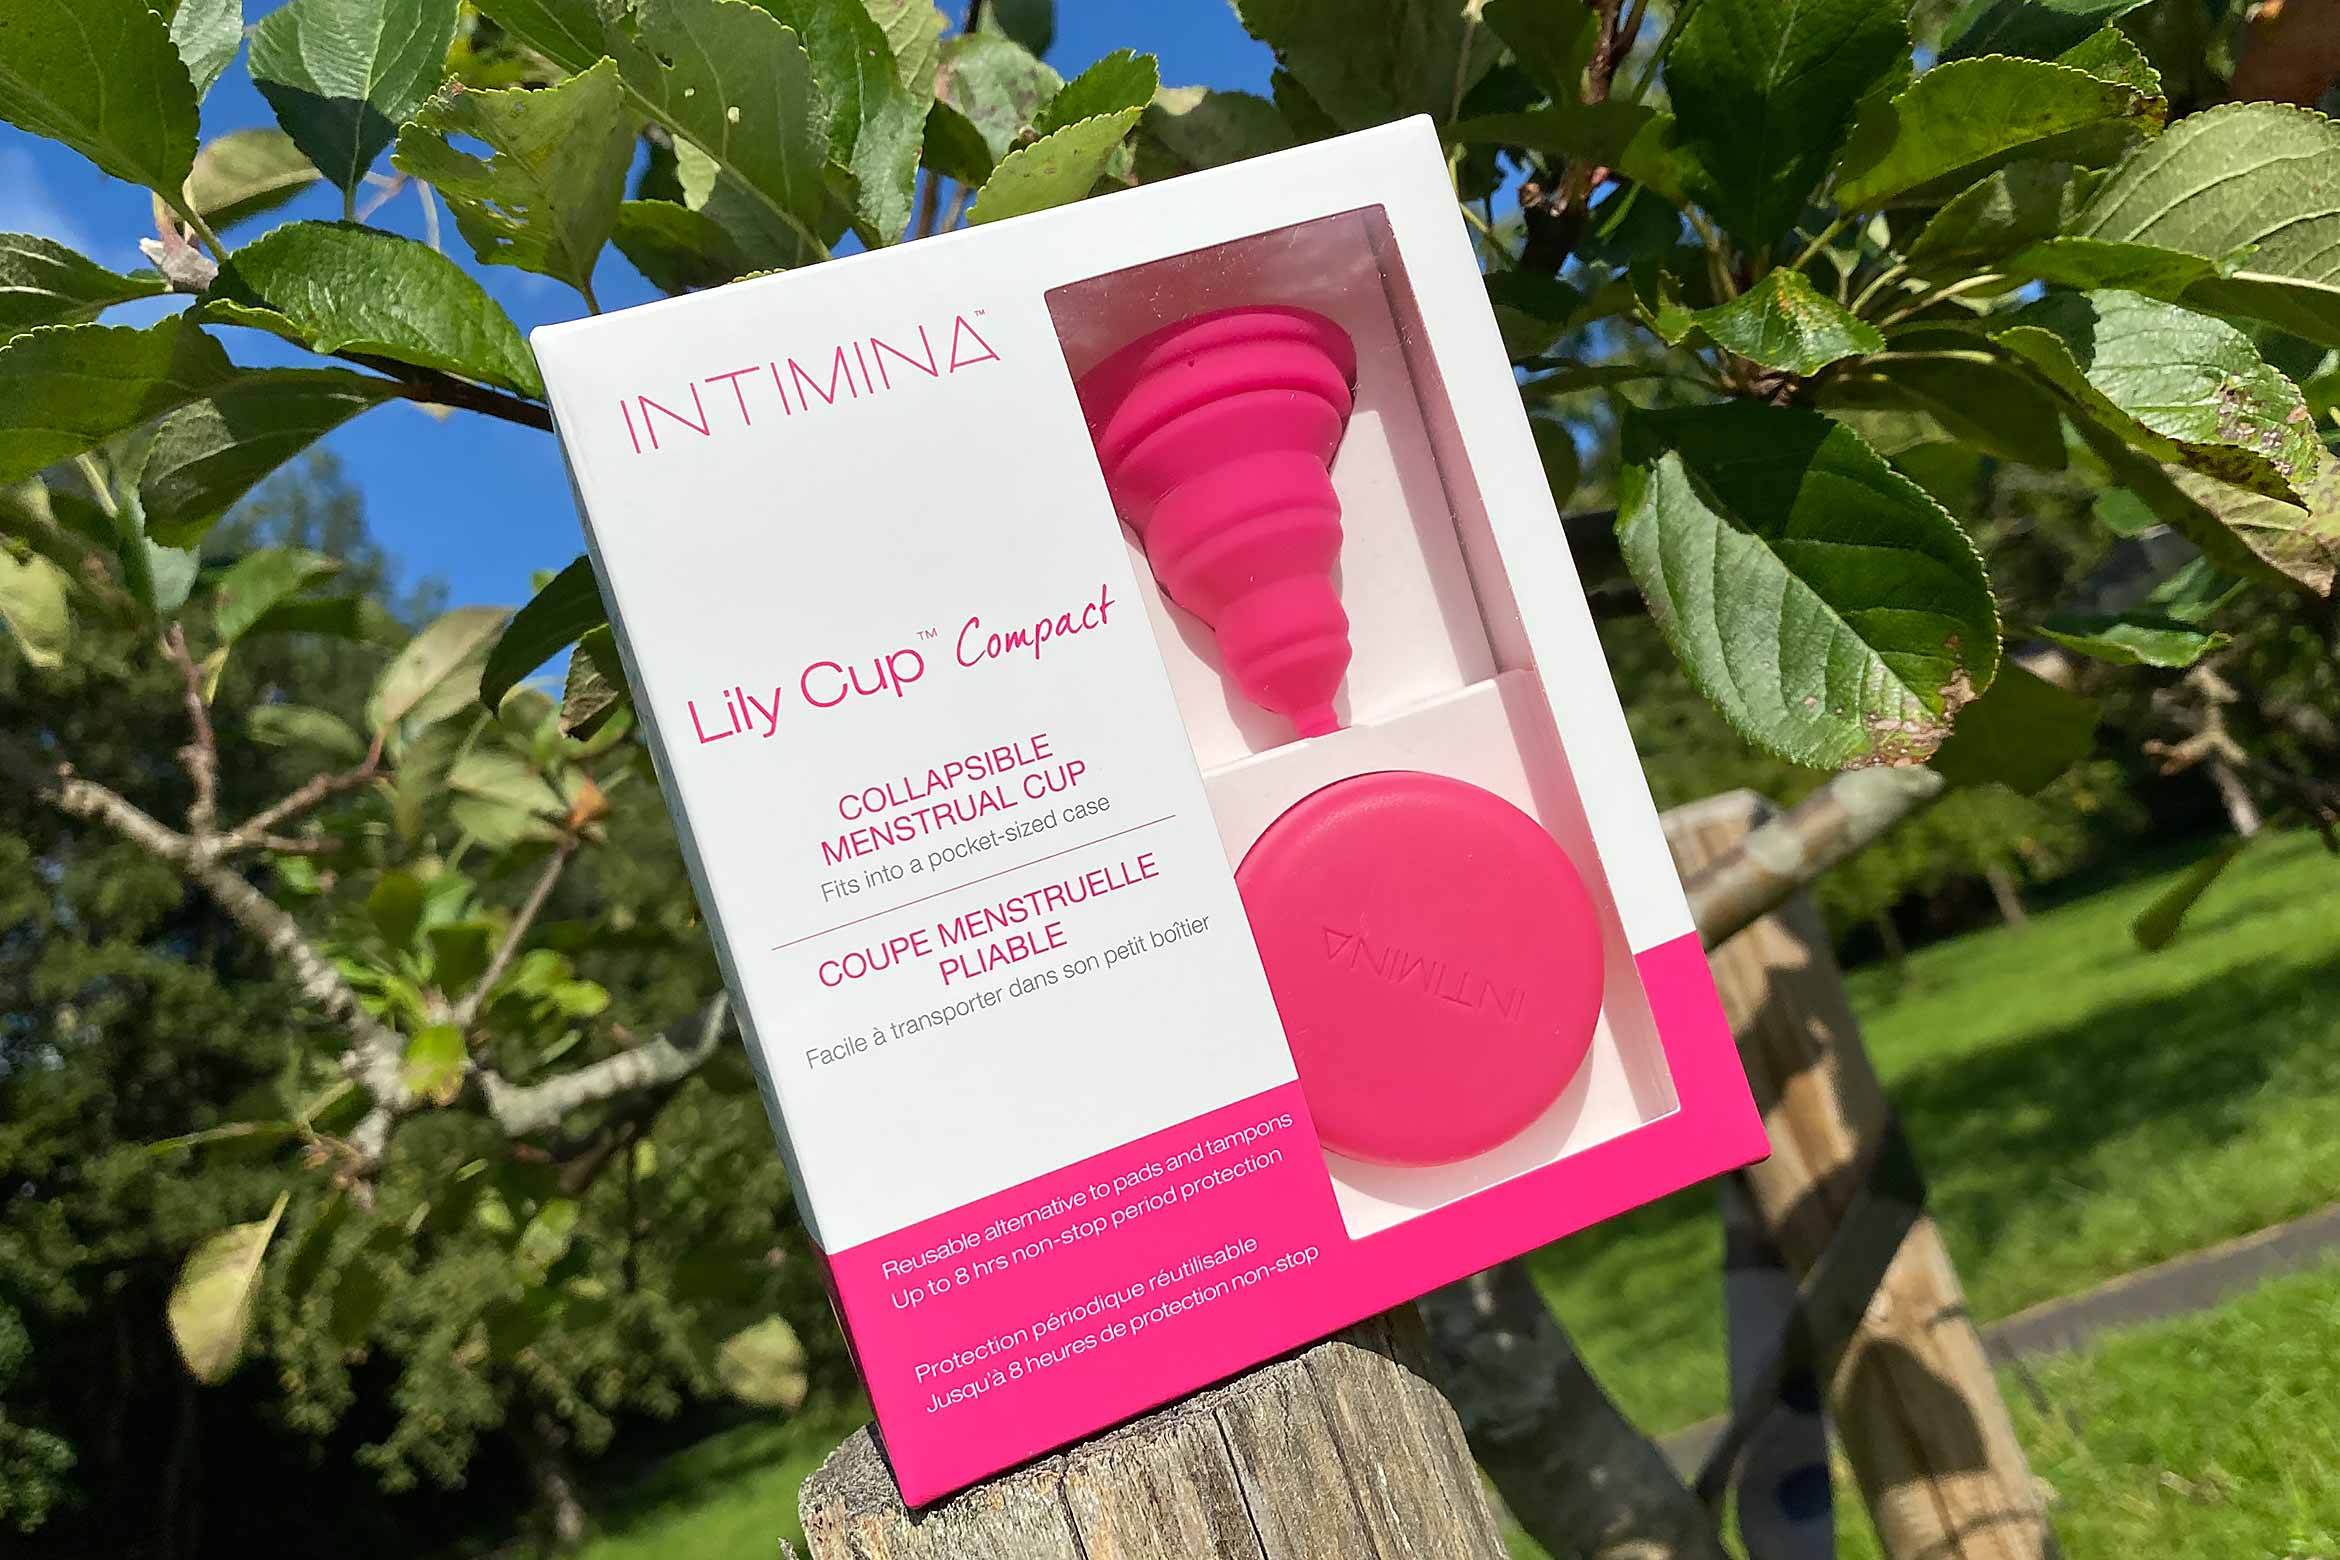 intimina lily cup compact